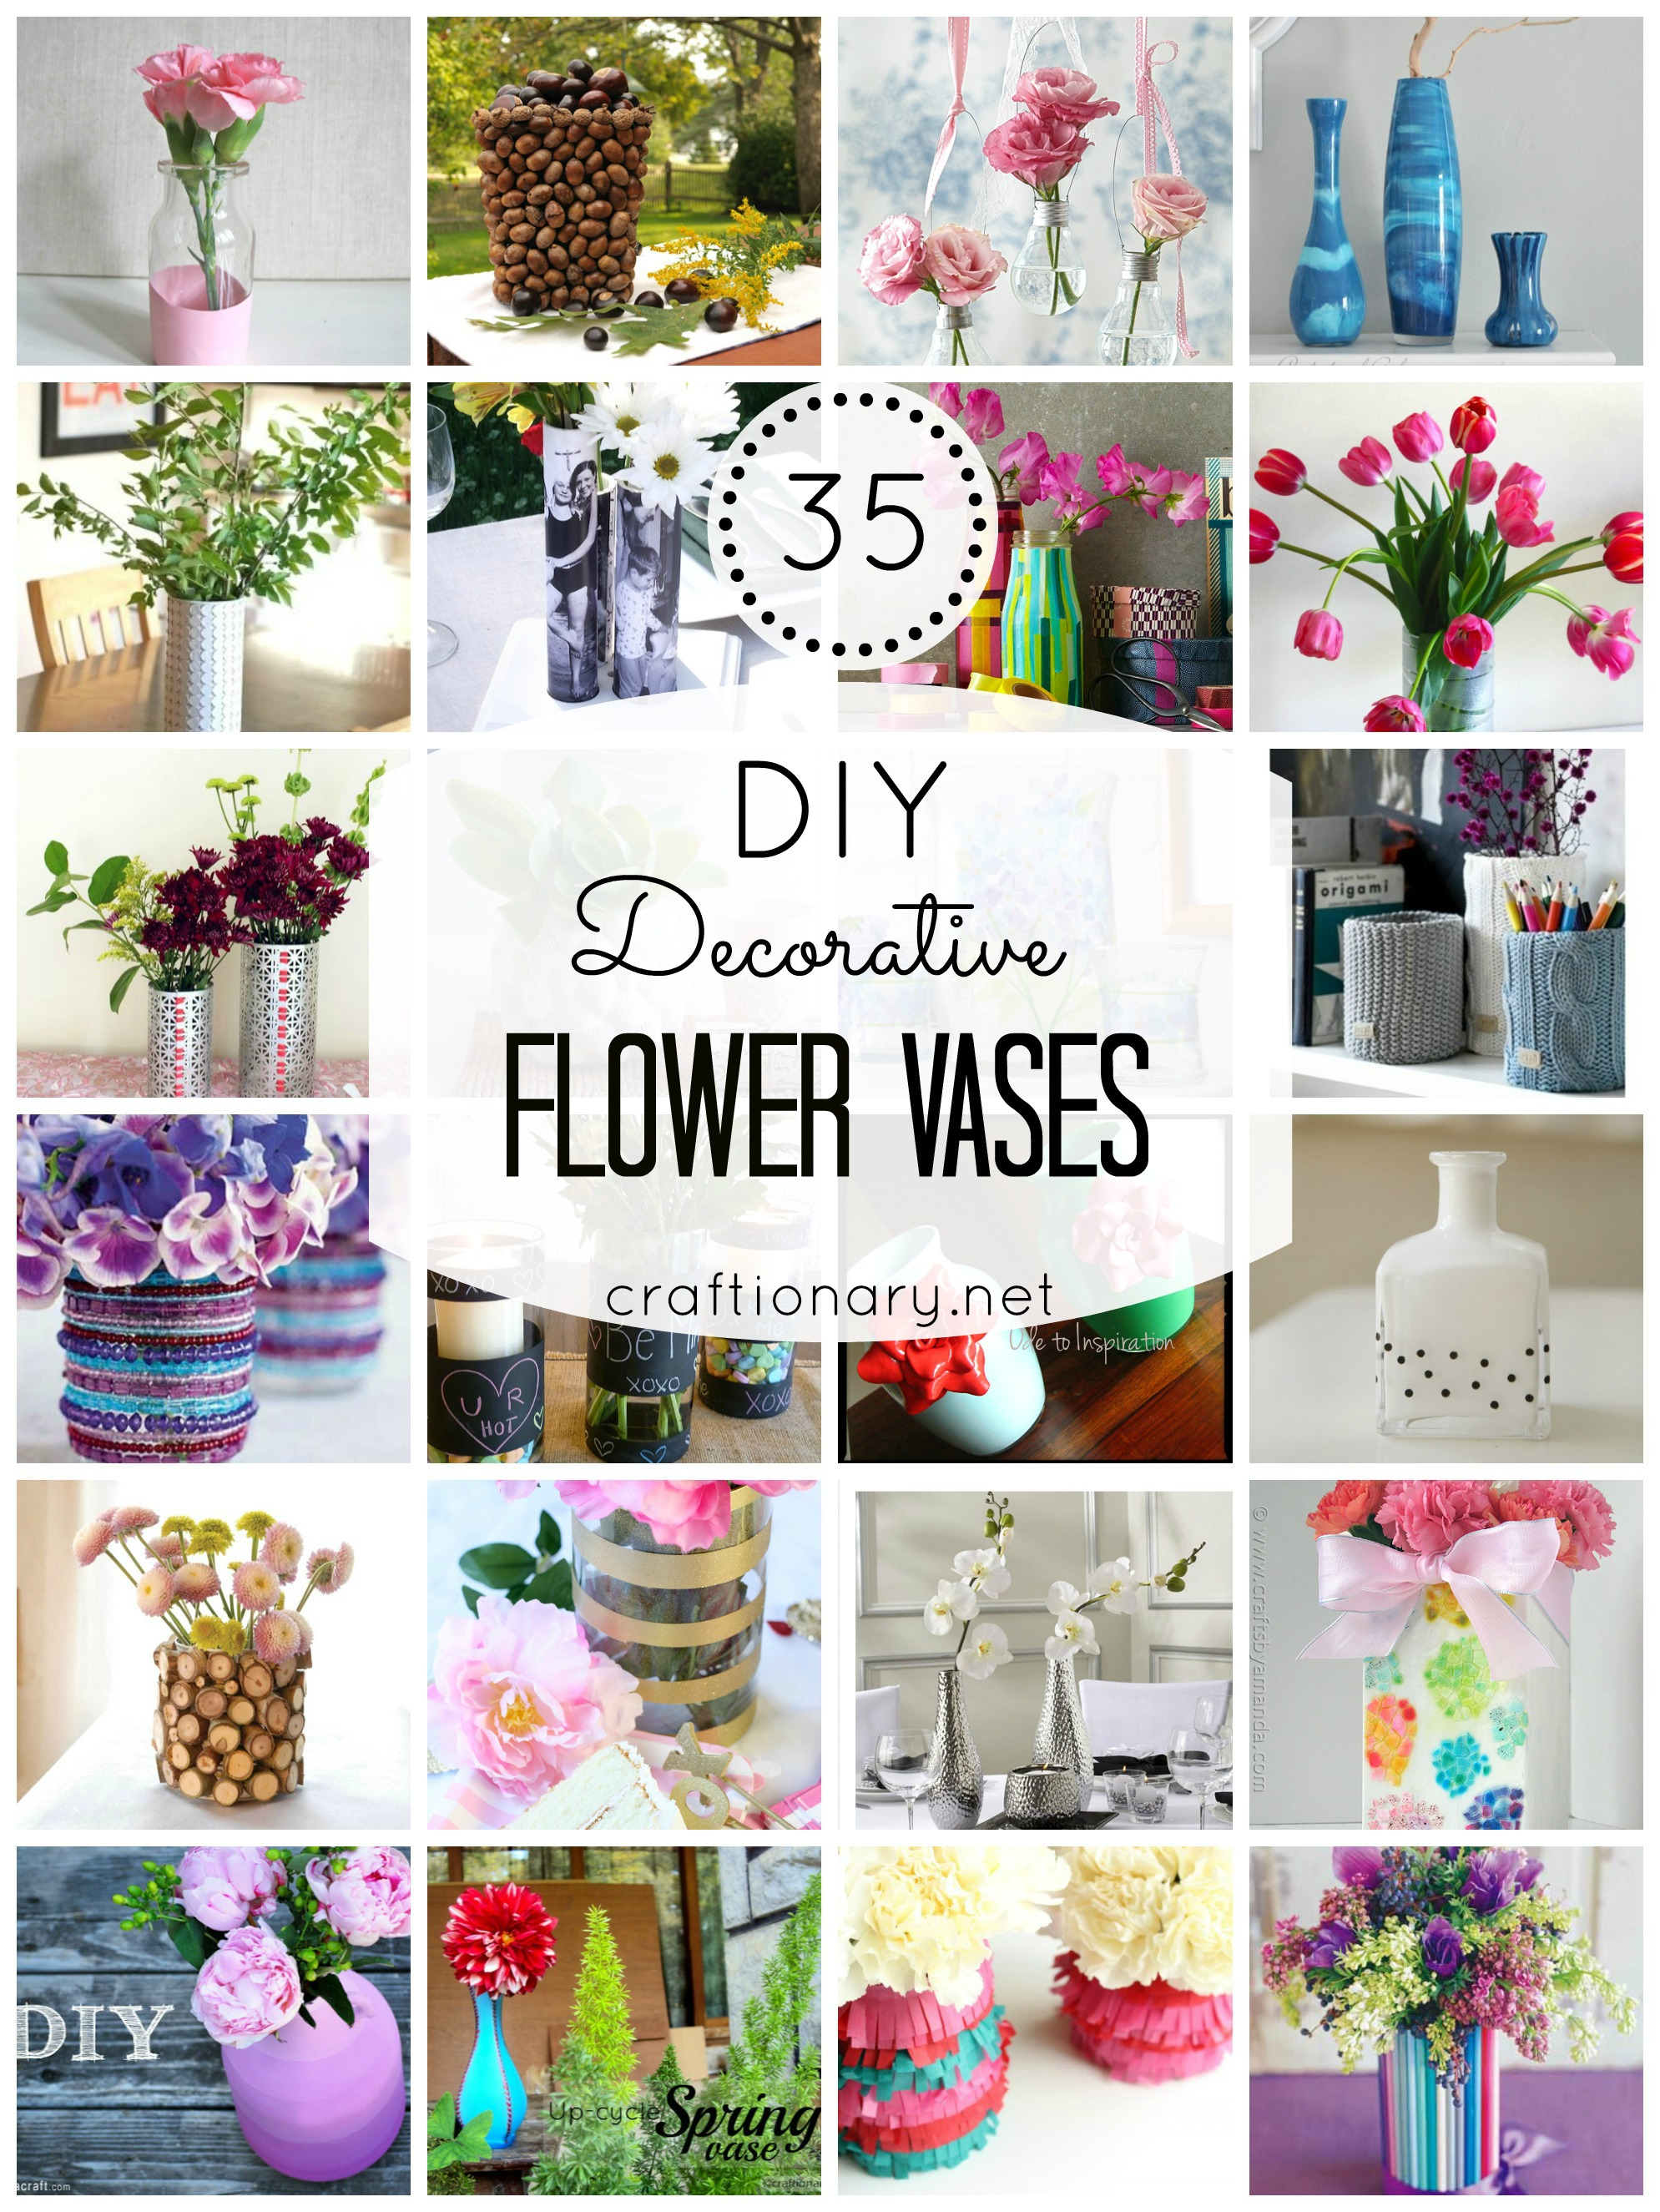 decorating flower vases | My Web Value